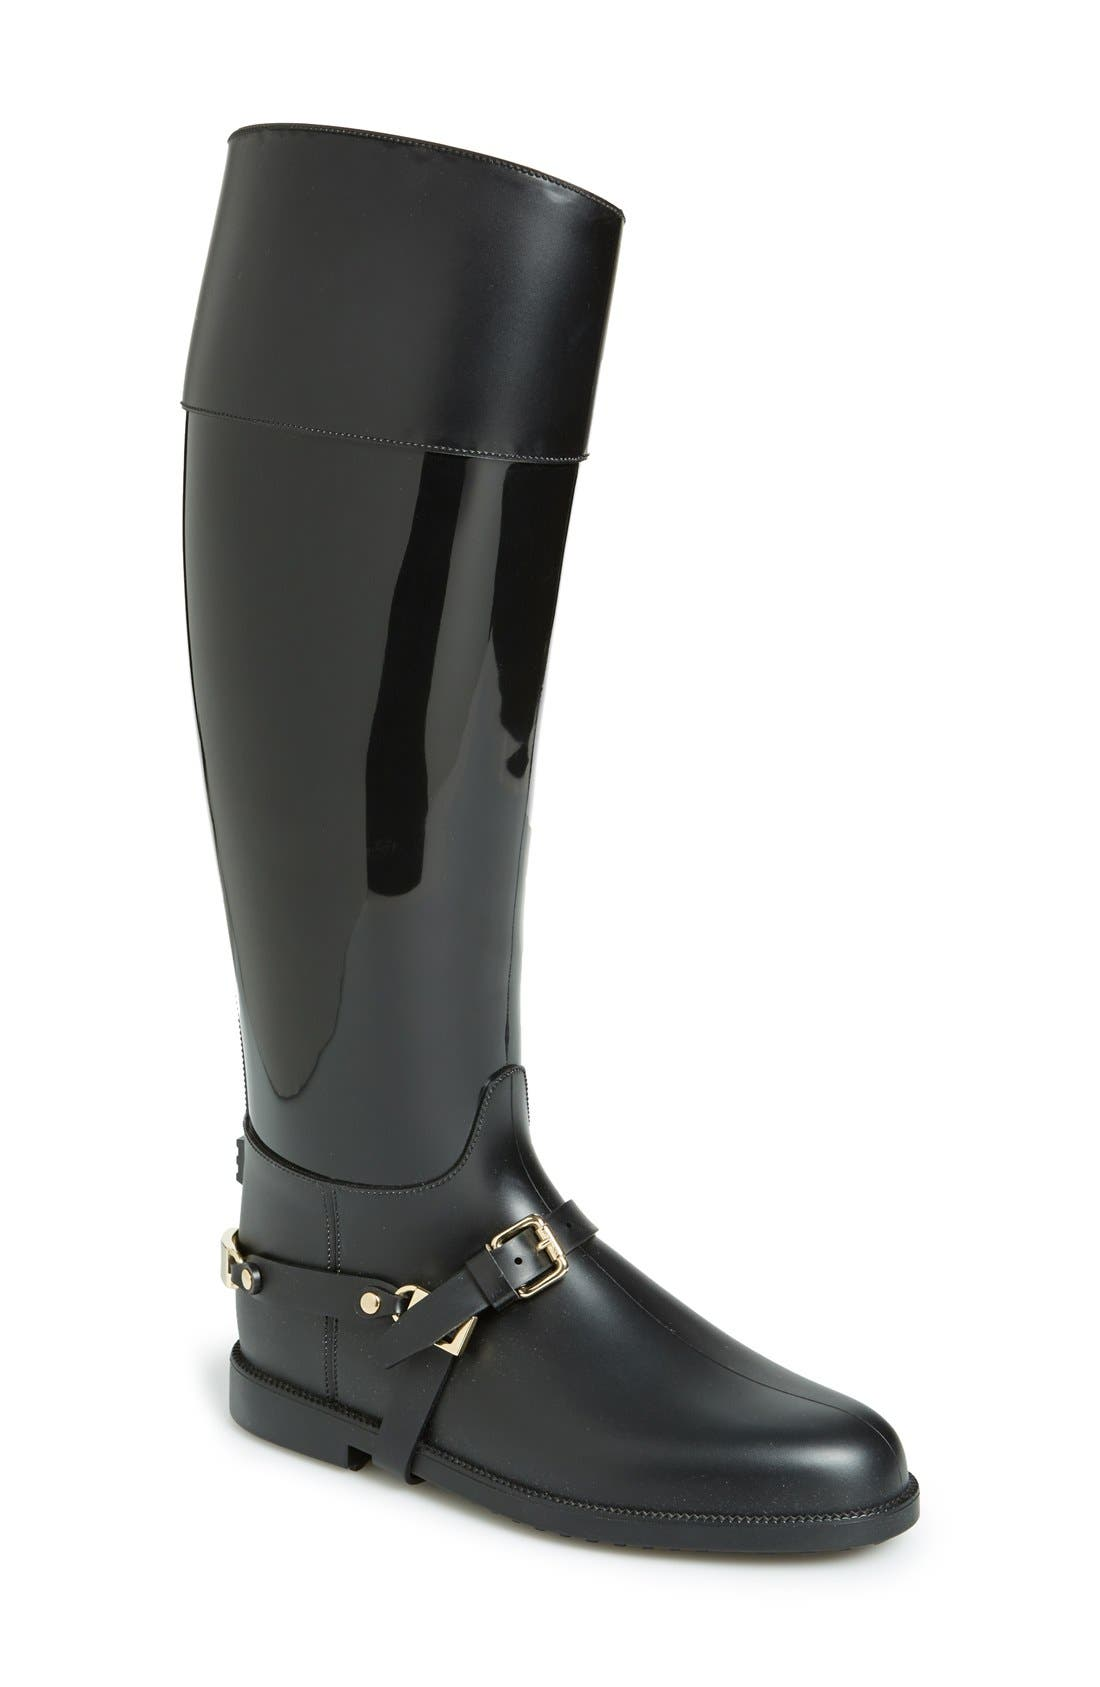 Alternate Image 1 Selected - Jimmy Choo 'Cheshire' Rain Boot